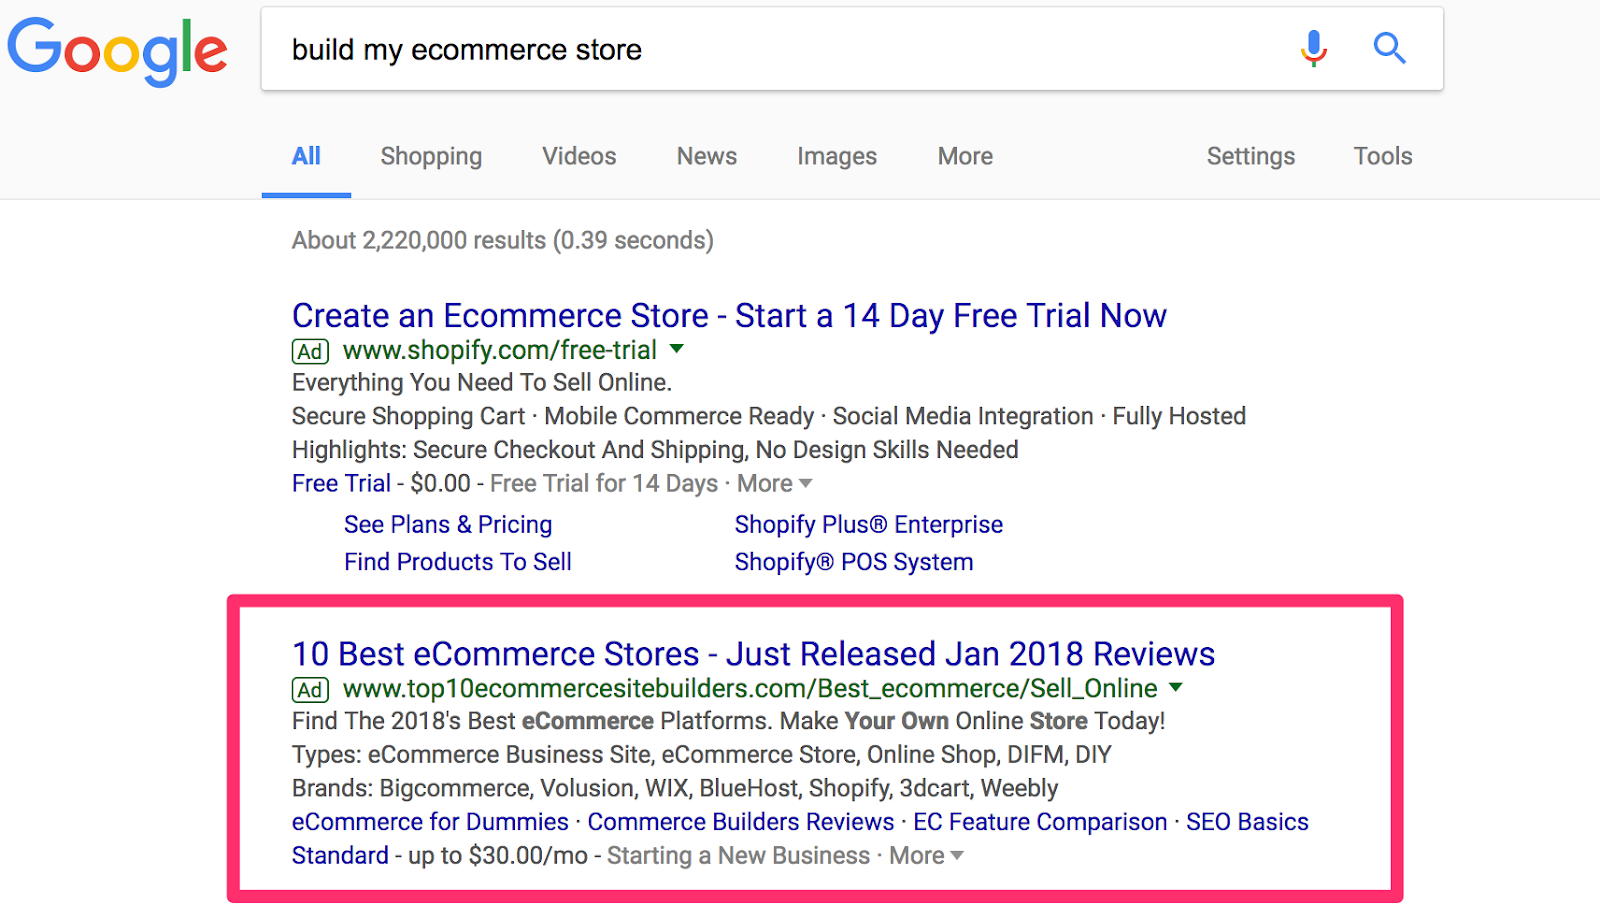 build my ecommerce store Google Search 1